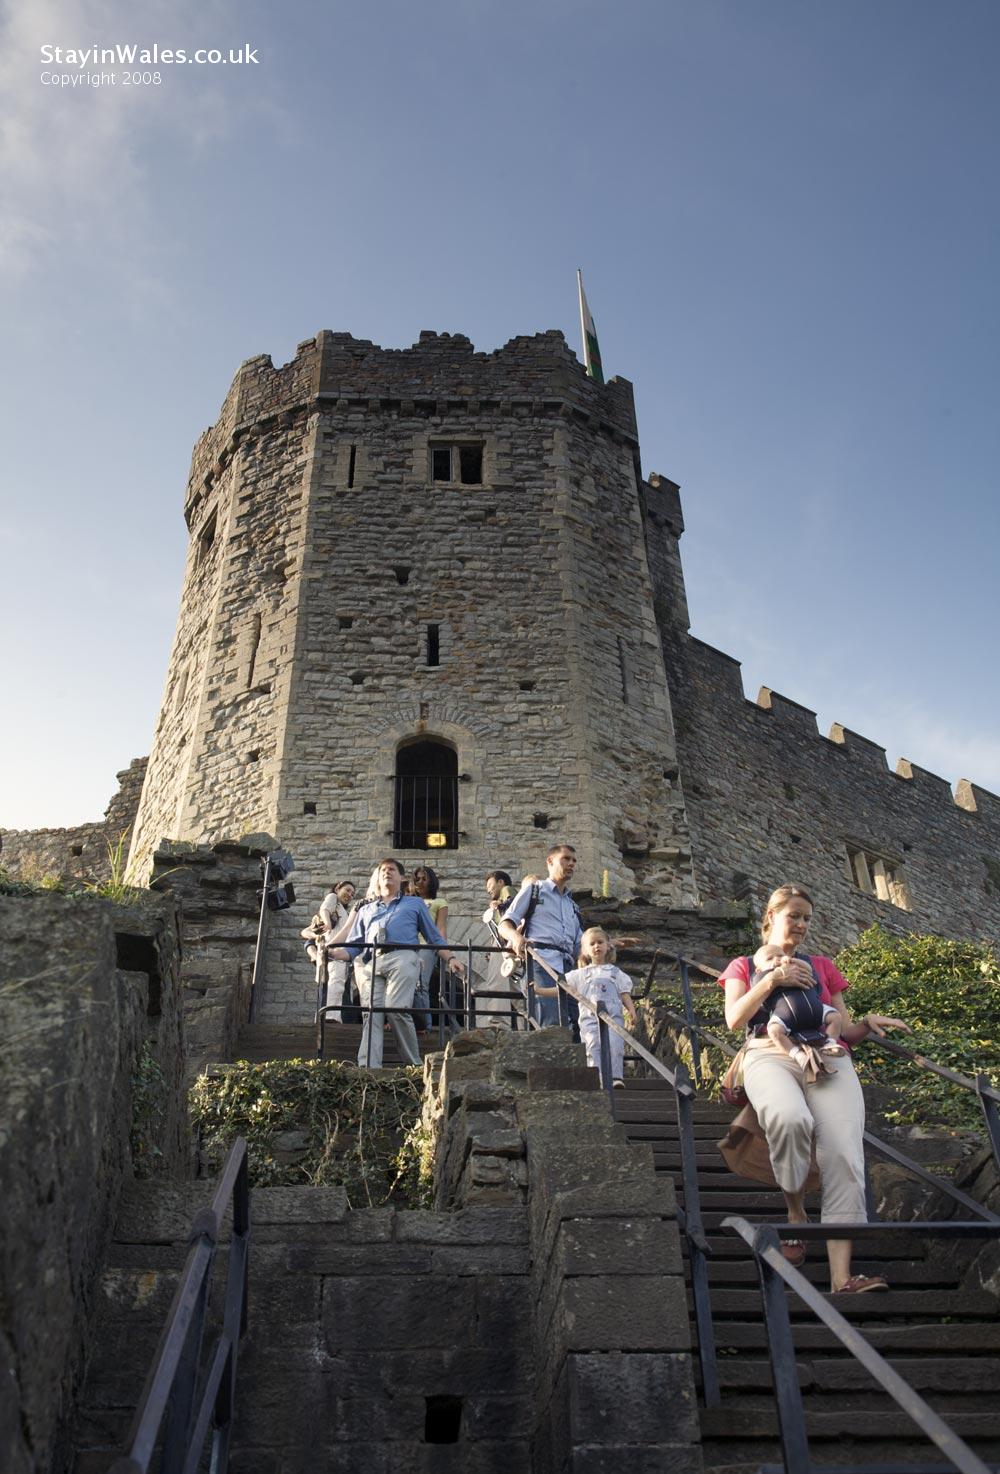 Visitors descend the Great Keep of Cardiff Castle